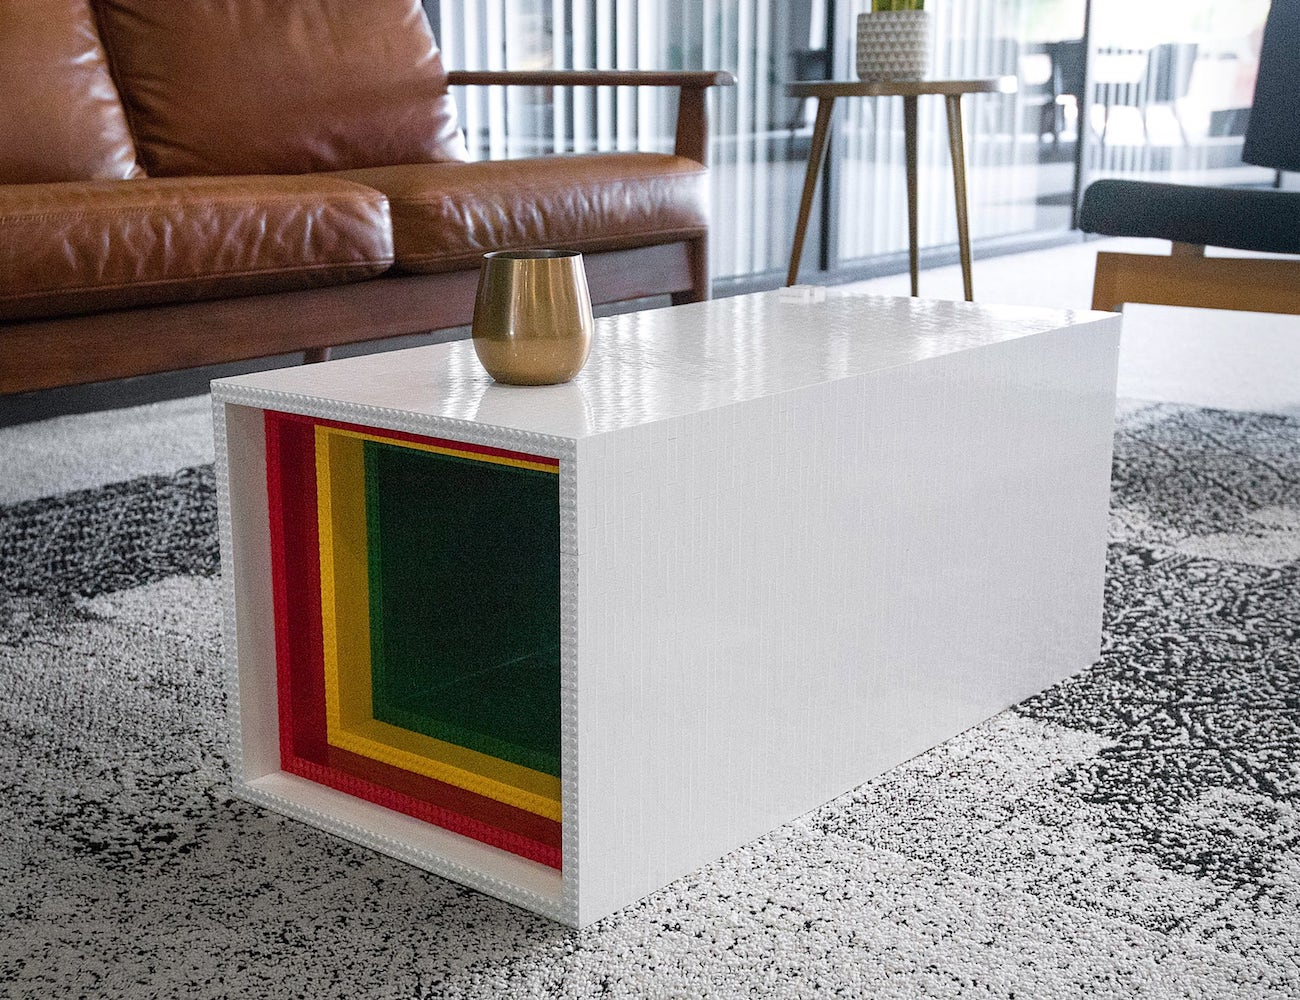 Yusong Zhang Lego Coffee Table is the most intricate Lego sculpture on the market